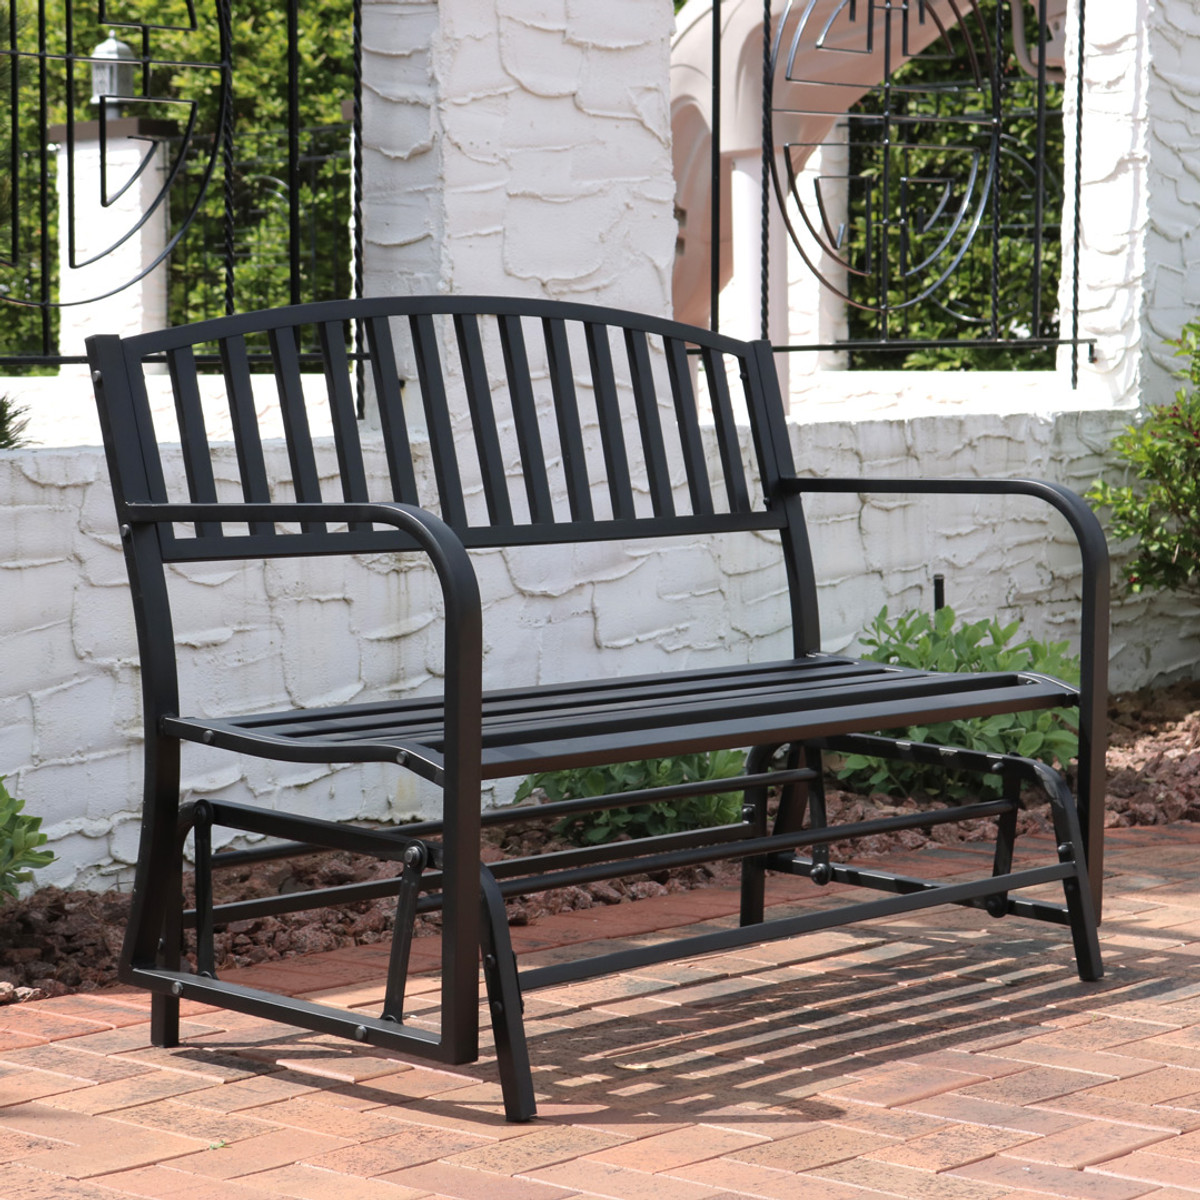 Sunnydaze 50 Inch Black Steel Outdoor Patio Glider Bench